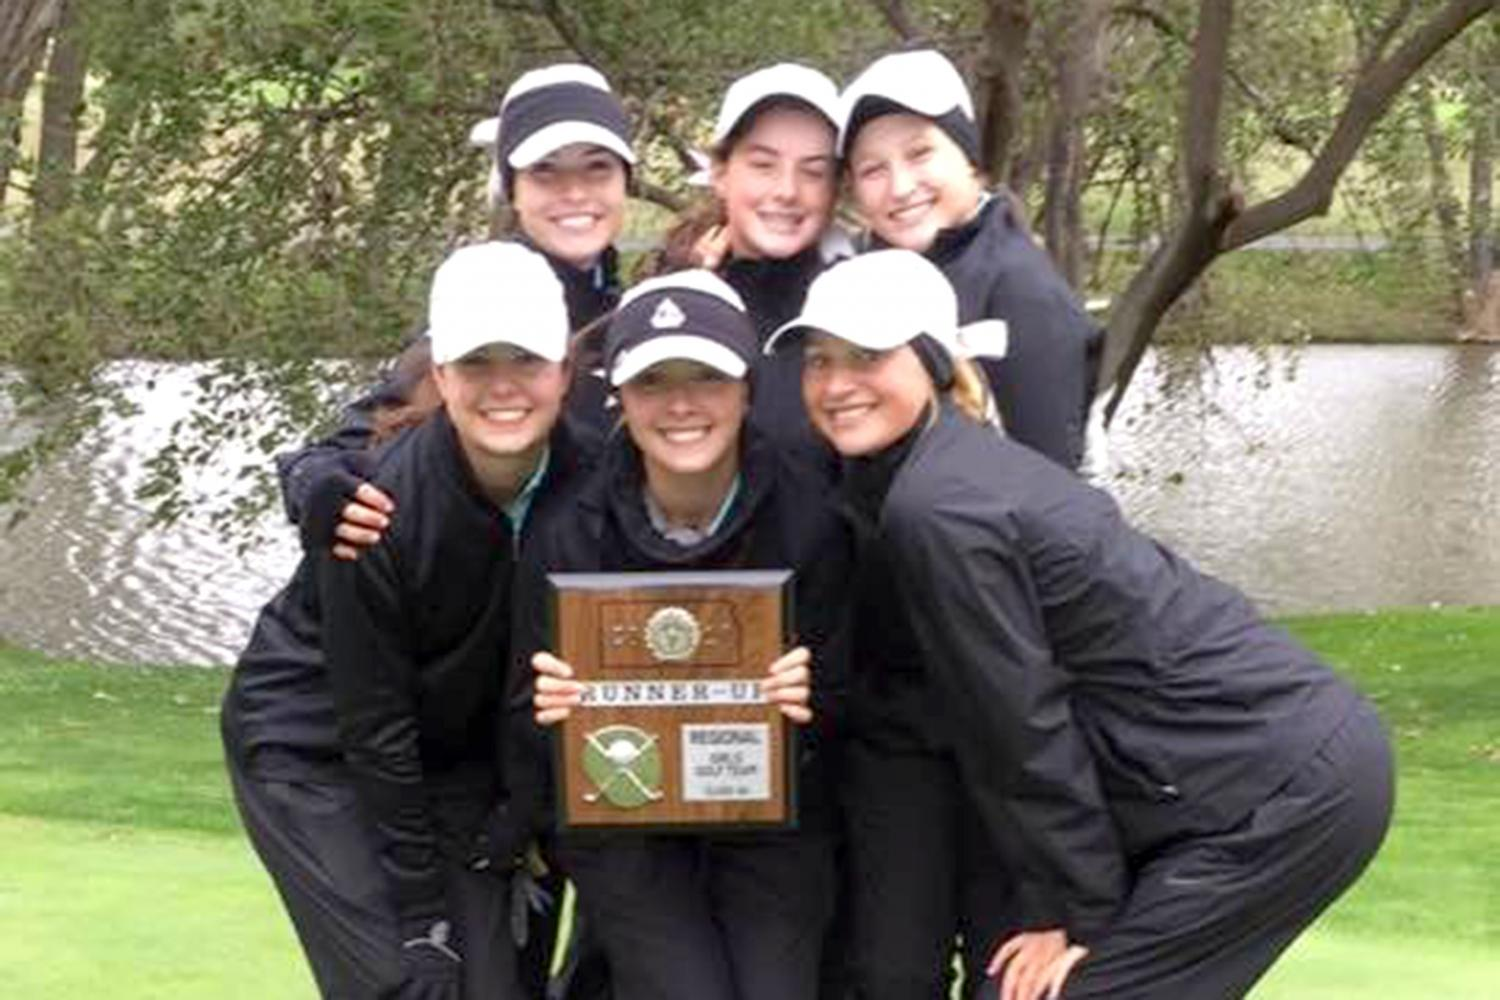 The Lady Indian golf team won second place at regionals, sending them to state for the 12th consecutive year.